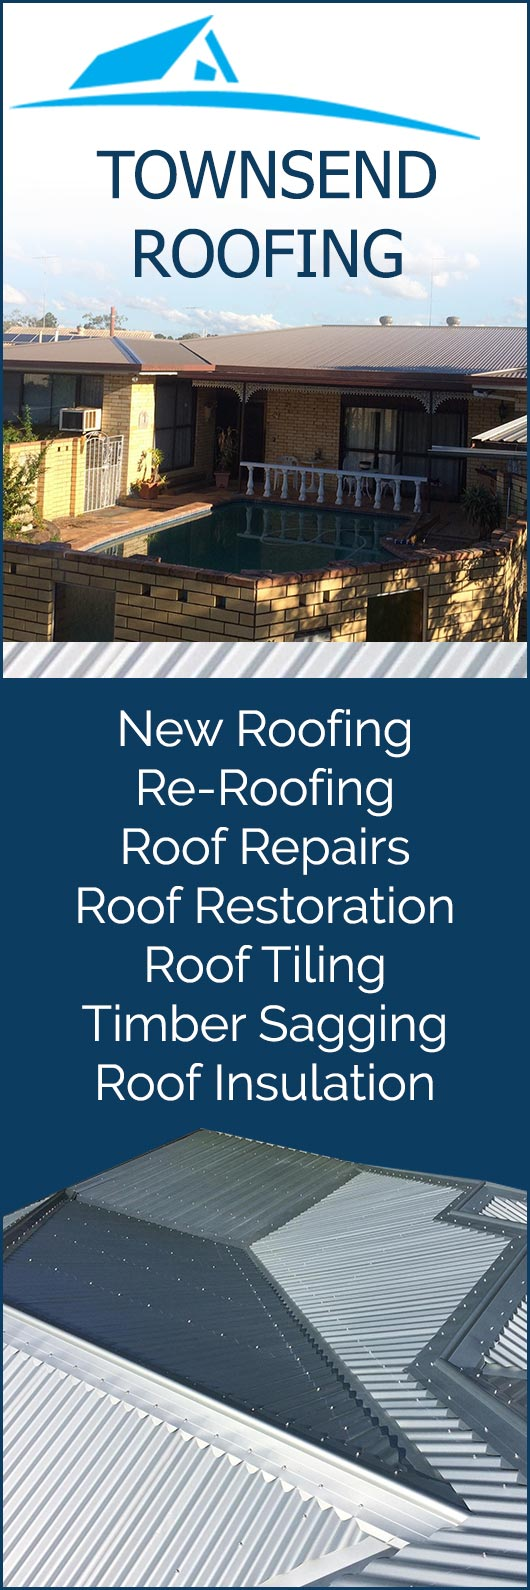 Charming Townsend Roofing   Promotion